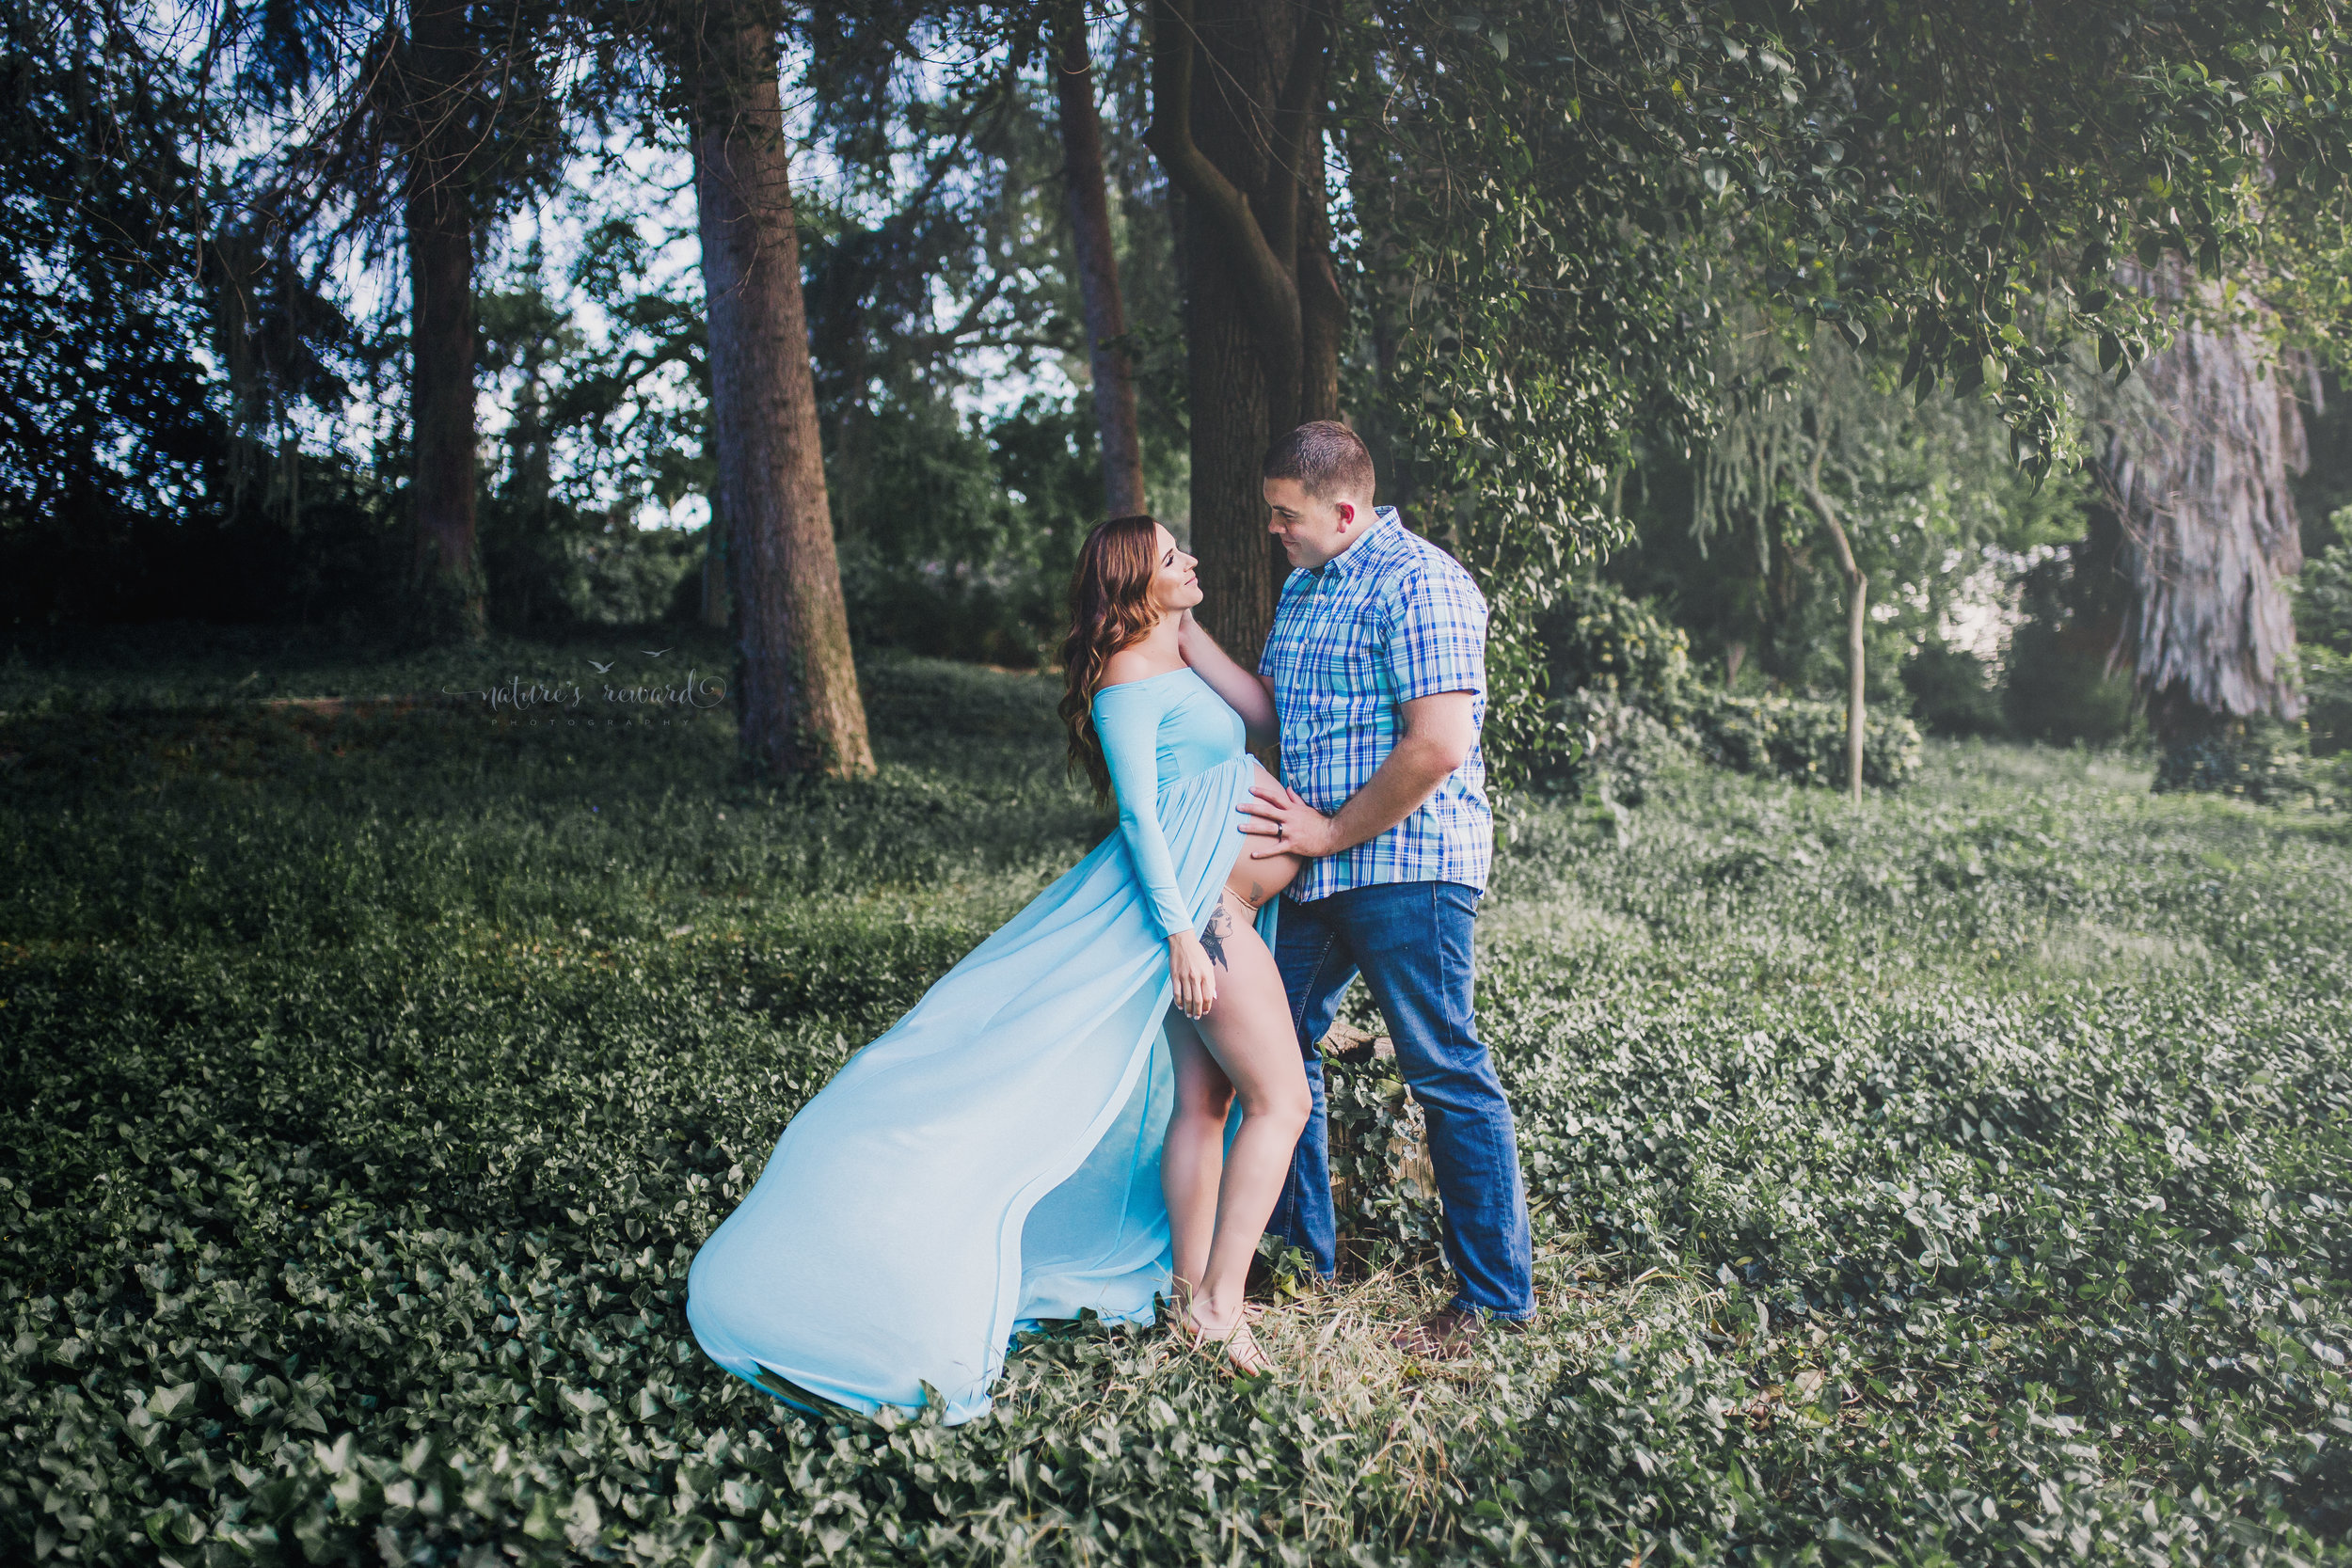 Beautiful expecting mother in a blue maternity gown with her husband in jeans and a blue plaid button down shirt in beautiful light are caught in this candid moment in a park setting in this maternity portrait taken by Nature's Reward Photography.